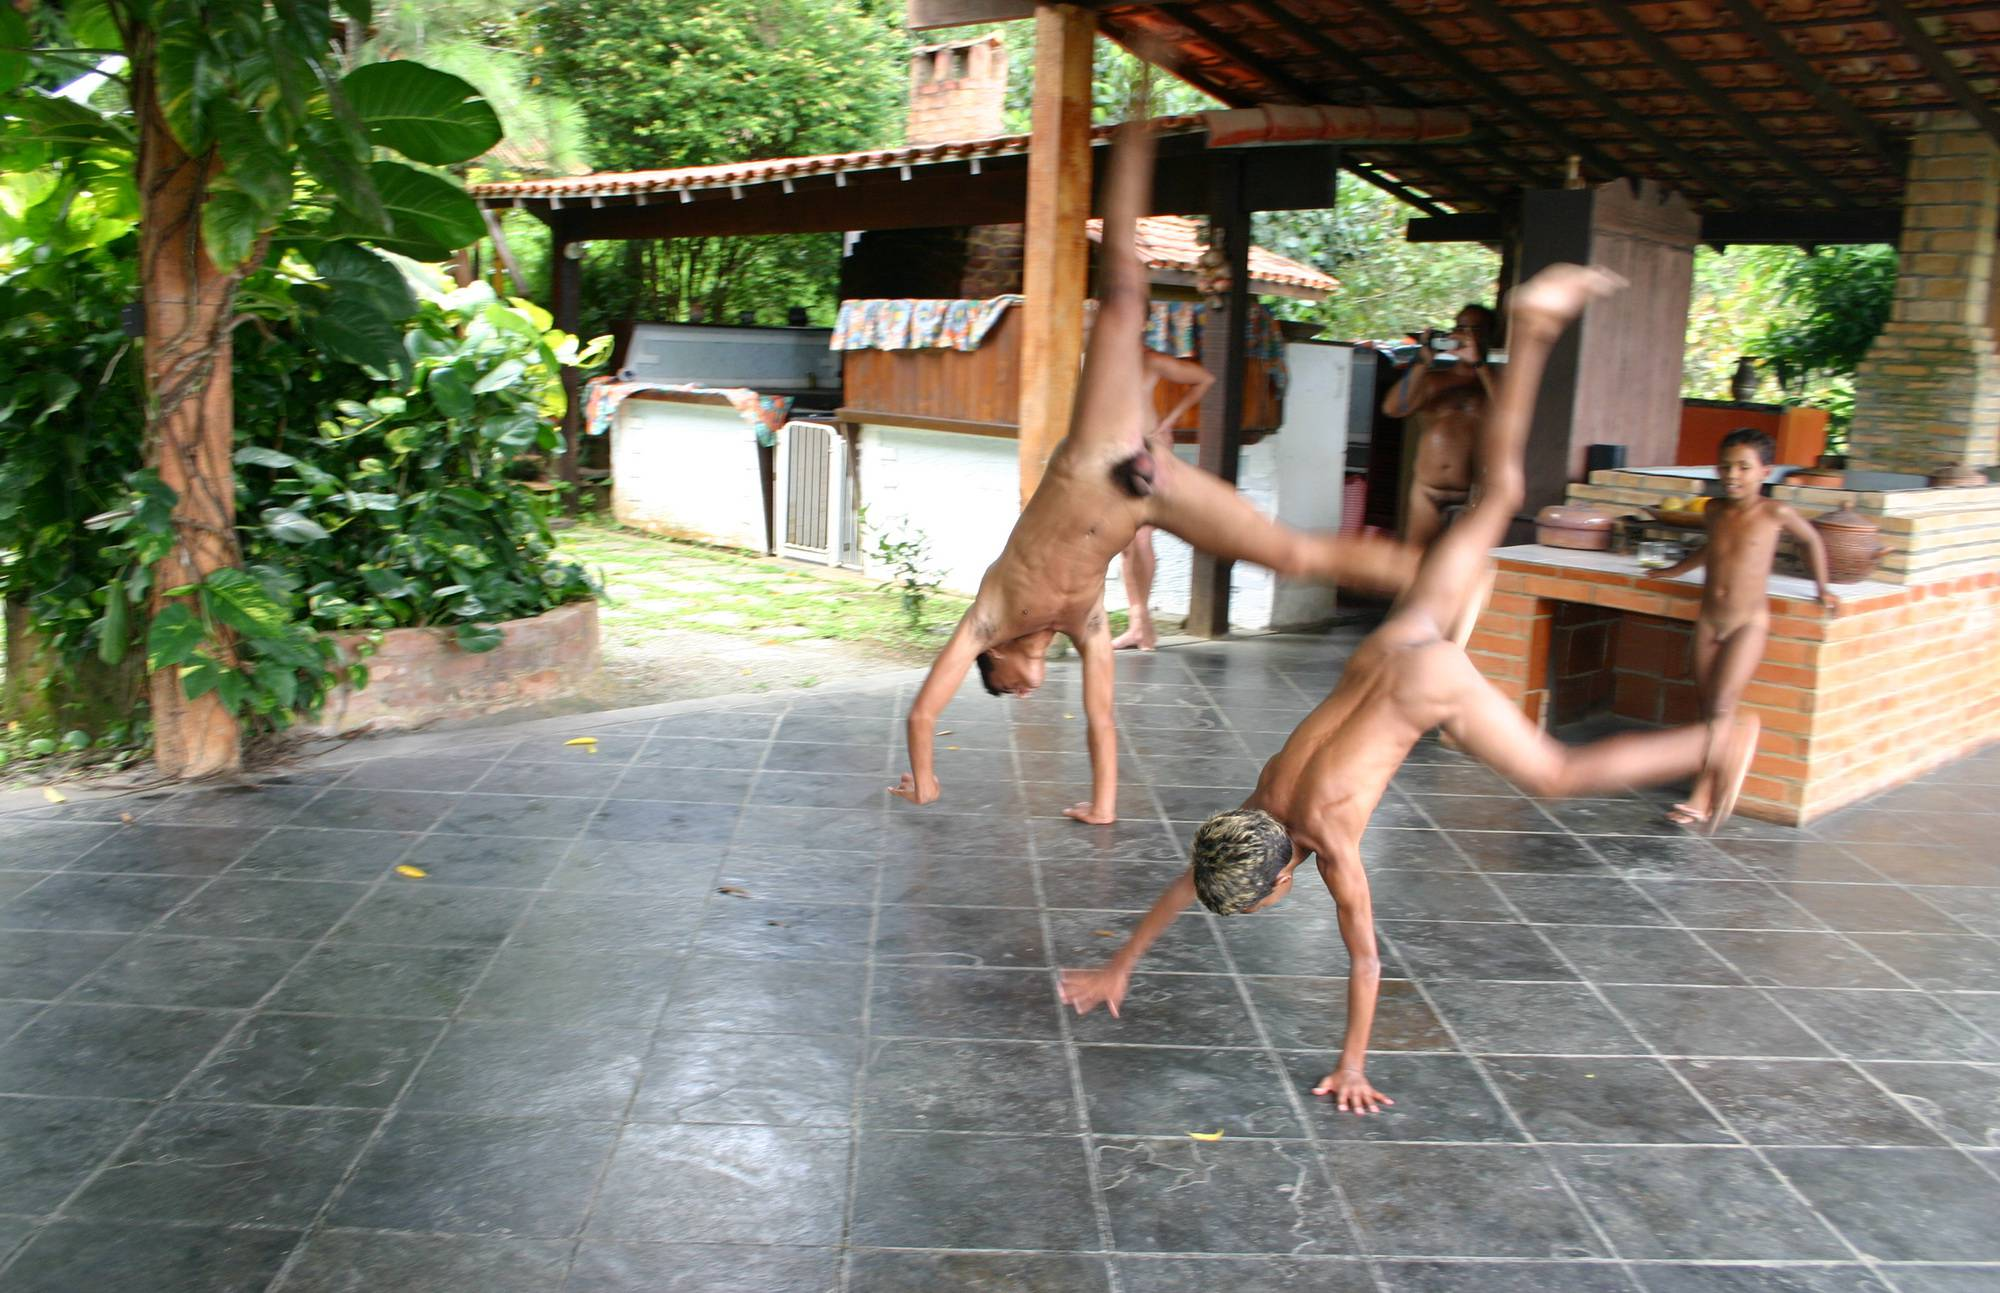 Nudist Photos Brazilian Men Are Dancing - 2